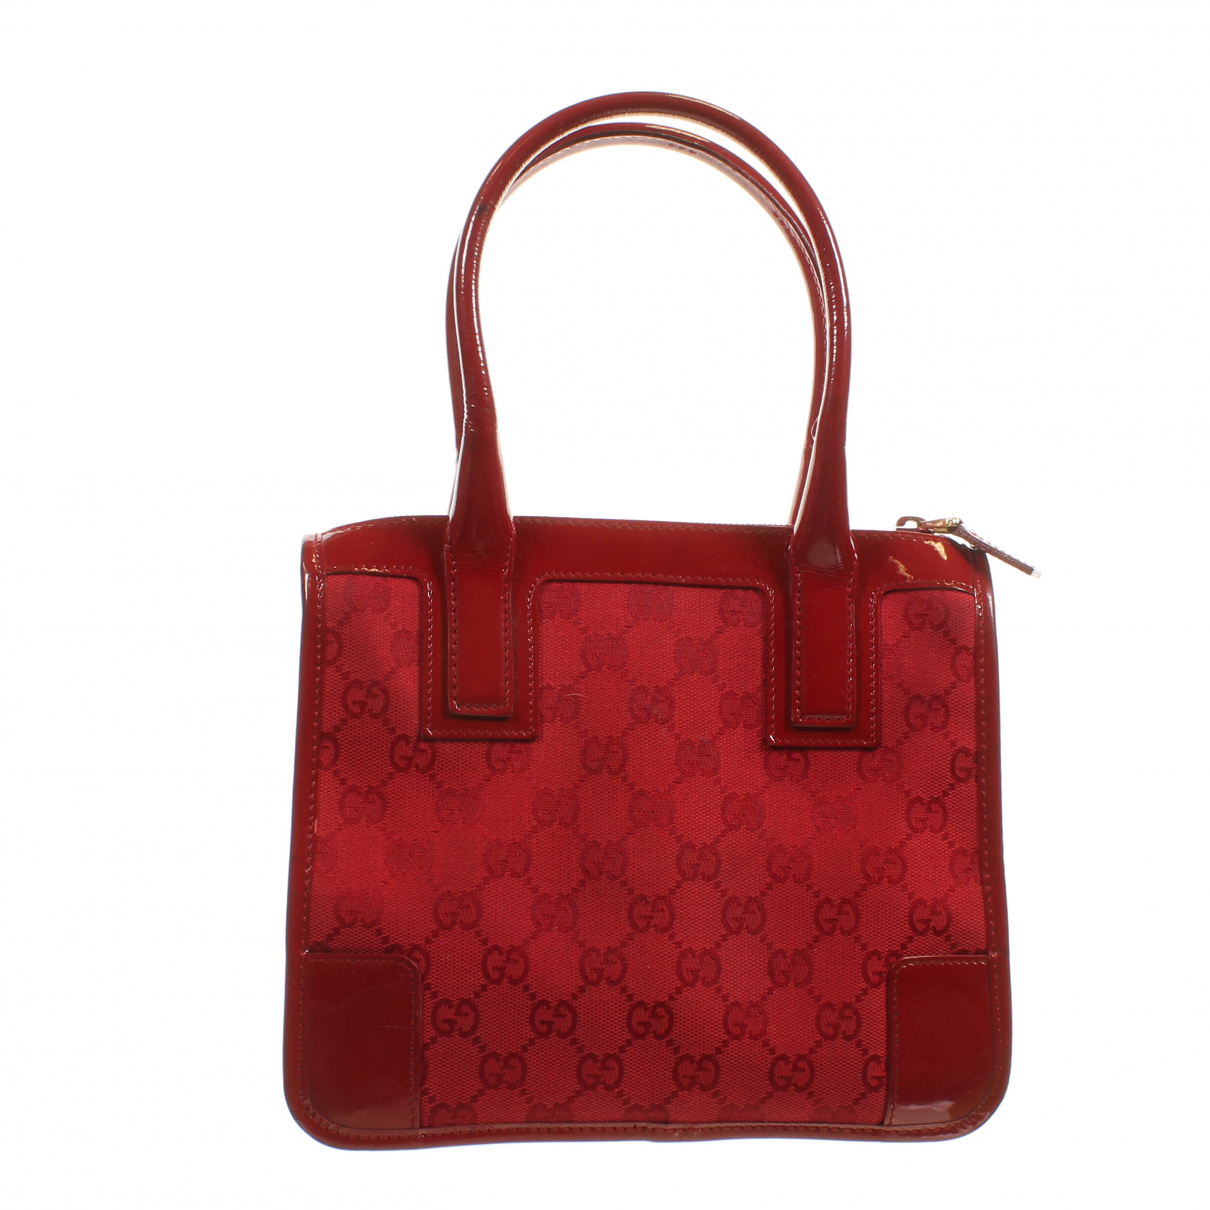 Gucci N Red Cloth handbag for Women N